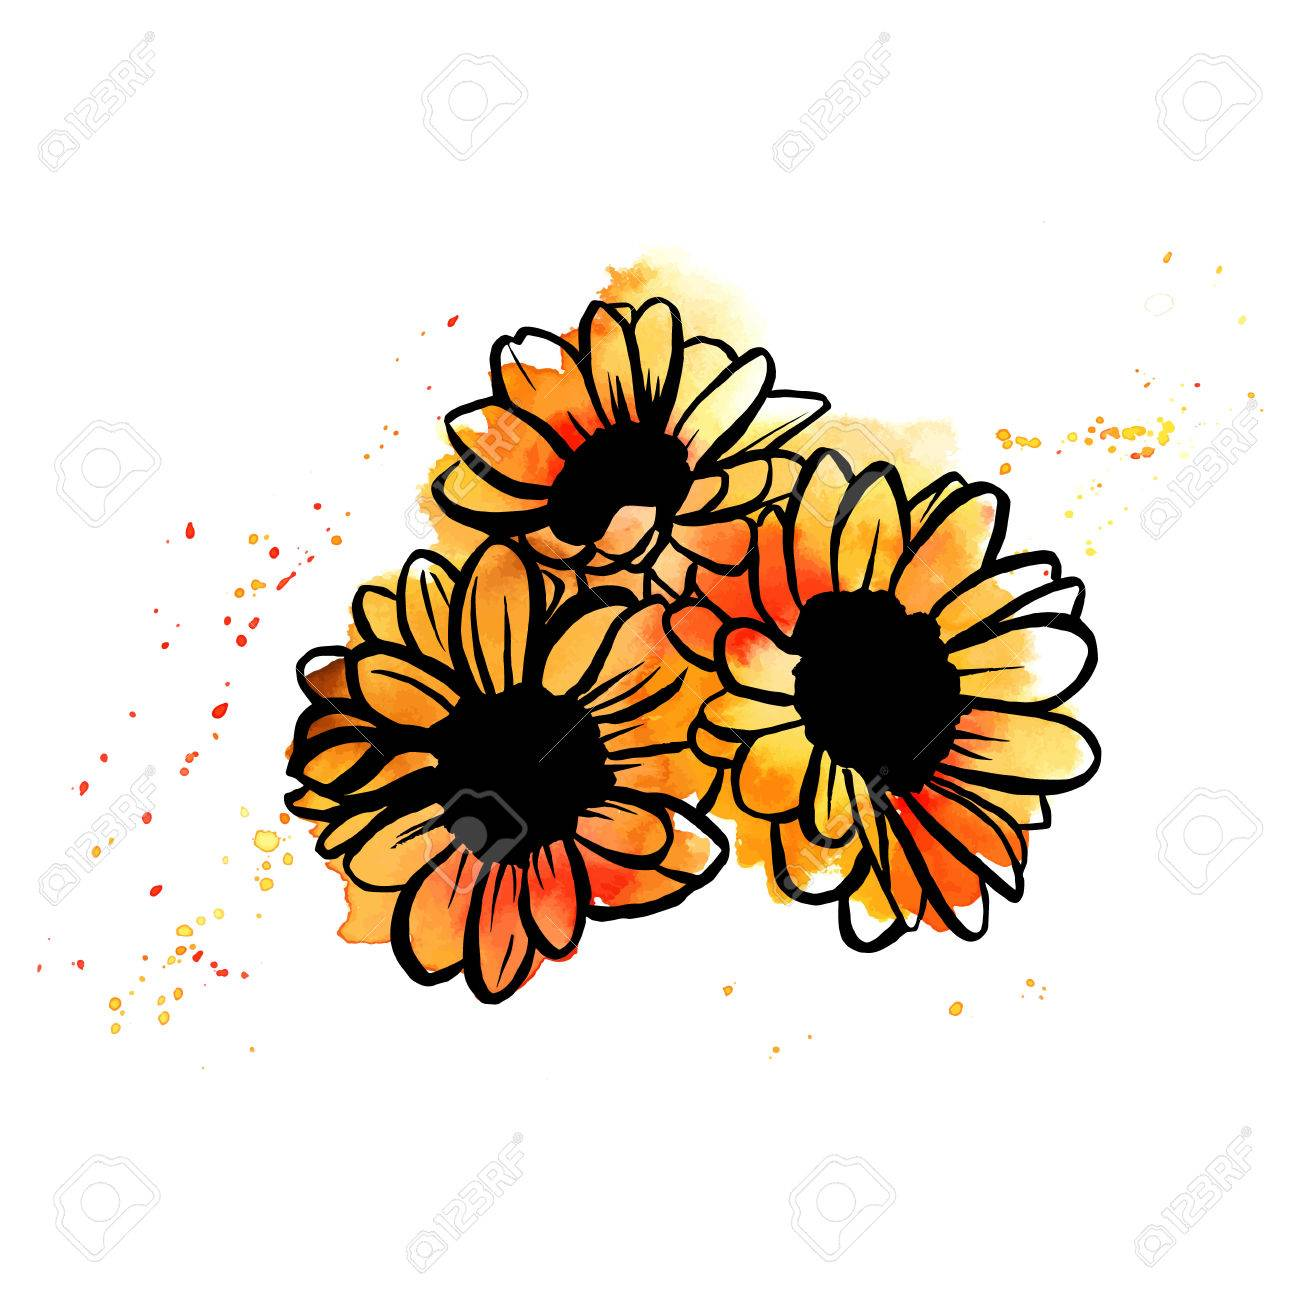 A Freehand Vector And Watercolor Drawing Of Bouquet Sunflowers With Splashes Paint